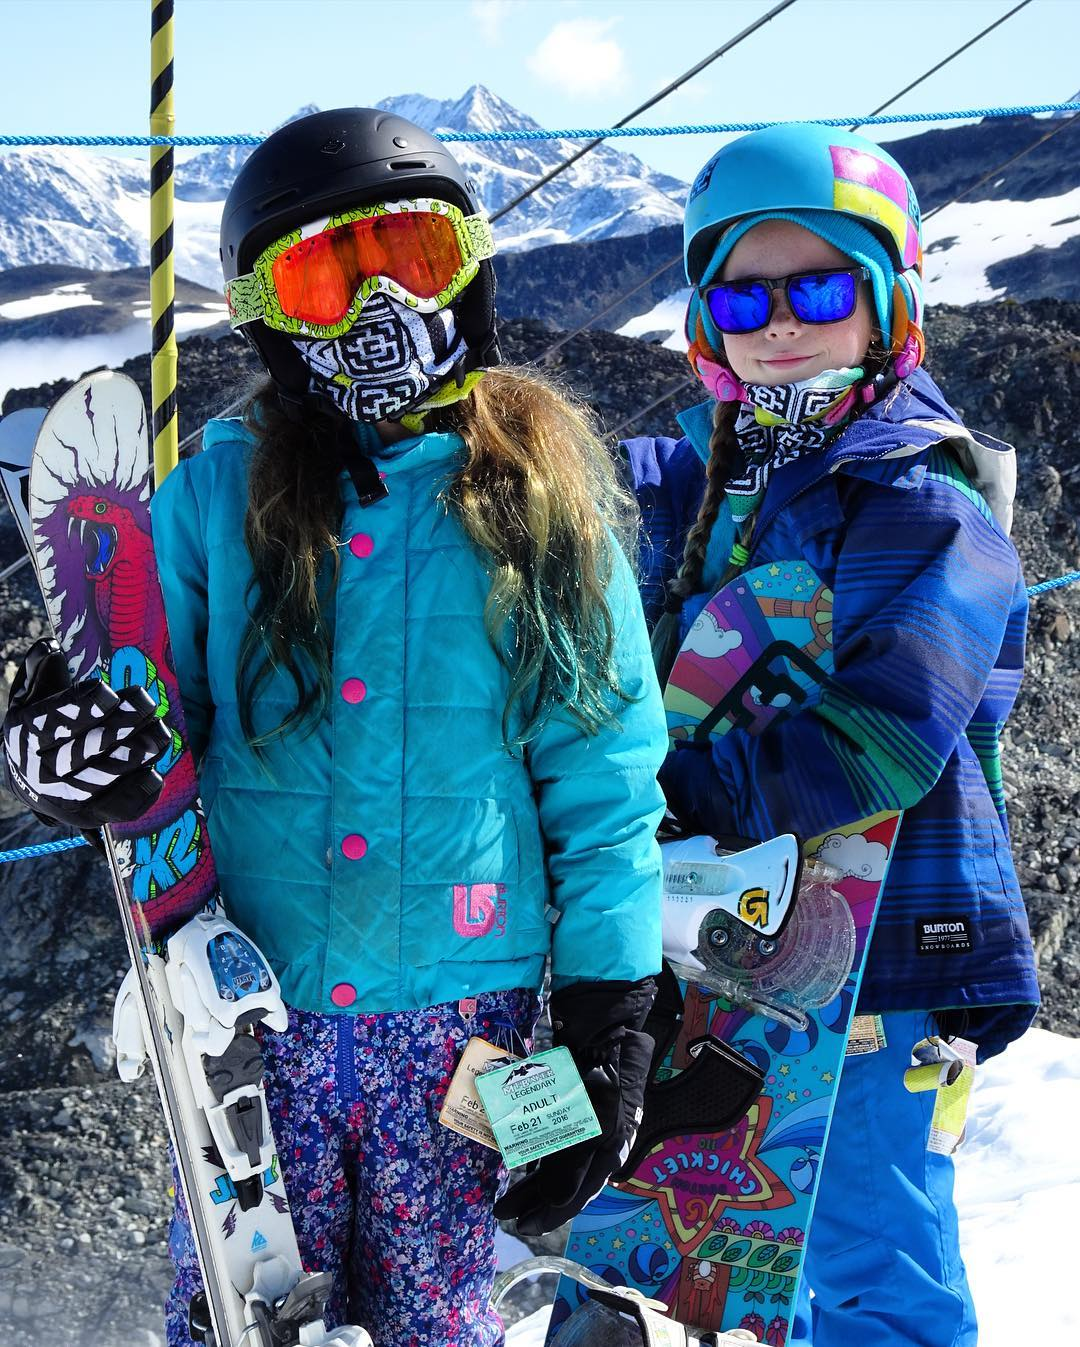 Kaia and Capri Achenbach ready to rip in the summer sun at @campofchampions. Our Mesh Shields were originally developed to protect your face from the scorching heat and sun up on the glacier, and they work perfectly! #avalon7 #liveactivated...